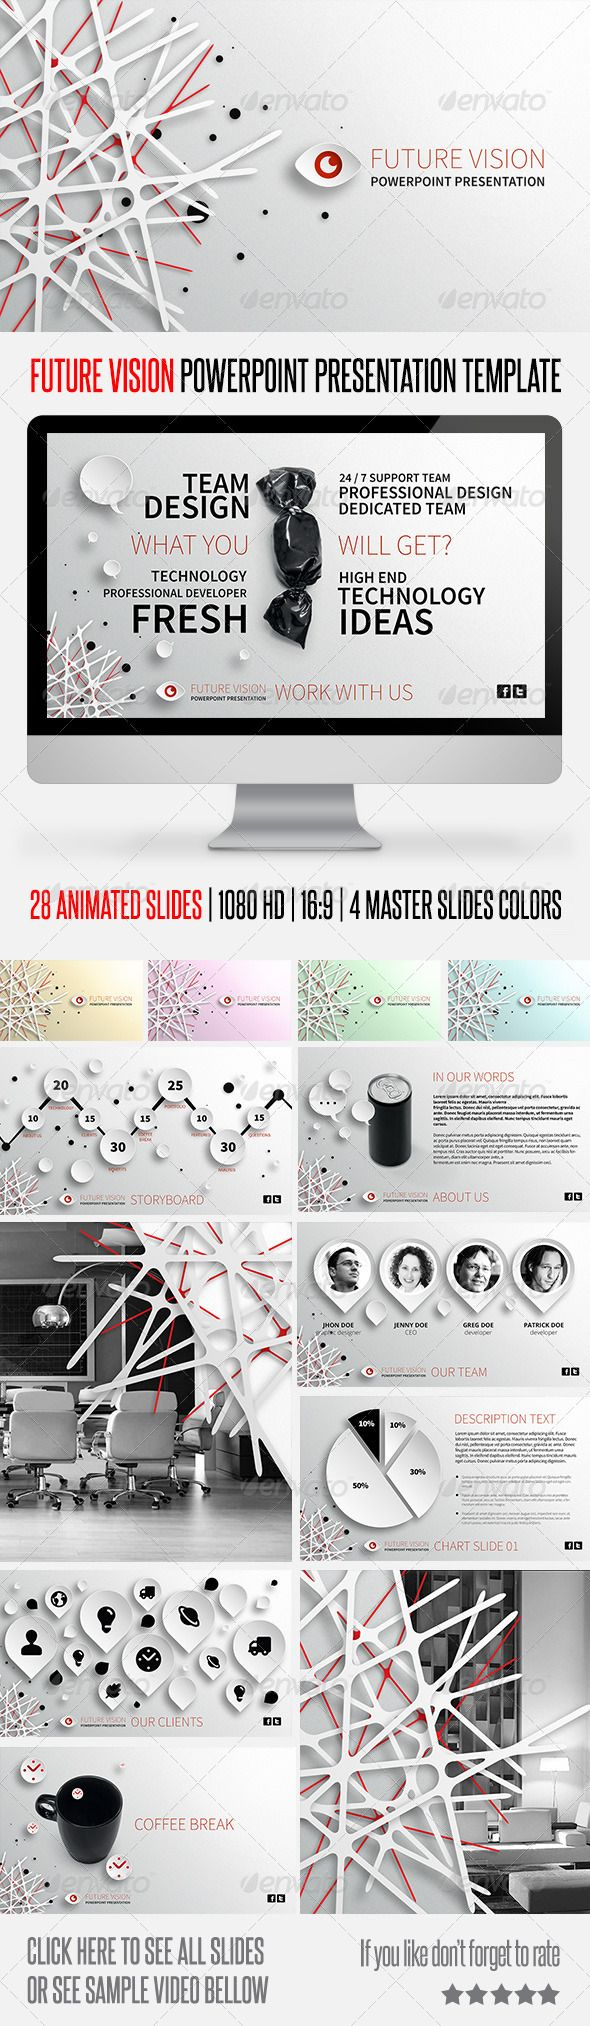 174 best presentation images on pinterest ppt design creative future vision powerpoint presentation template by something design via behance toneelgroepblik Images